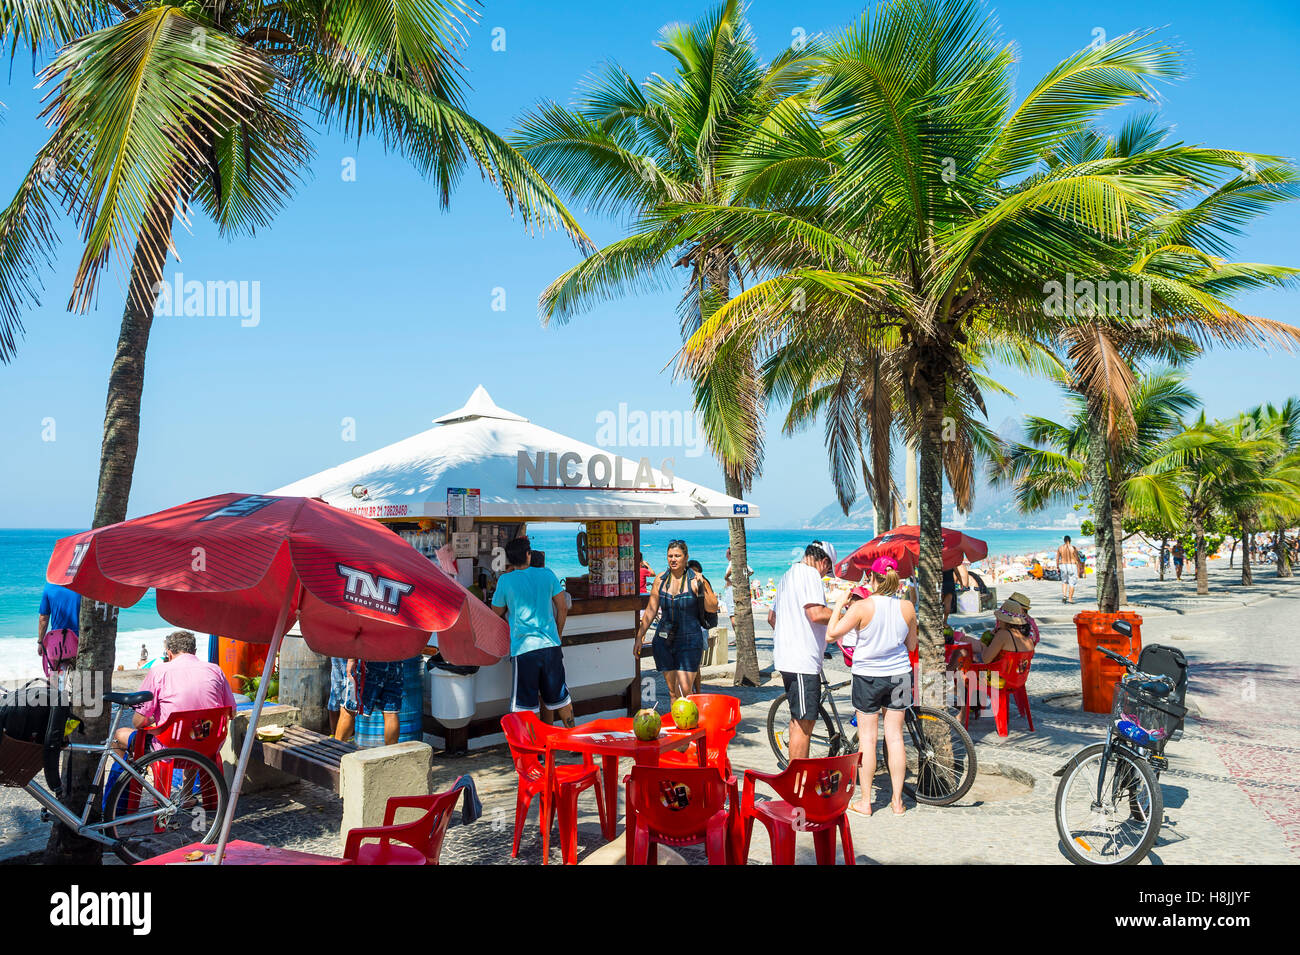 RIO DE JANEIRO - MARCH 20, 2015: Brazilians relax at a kiosk selling coconuts overlooking Ipanema Beach. - Stock Image